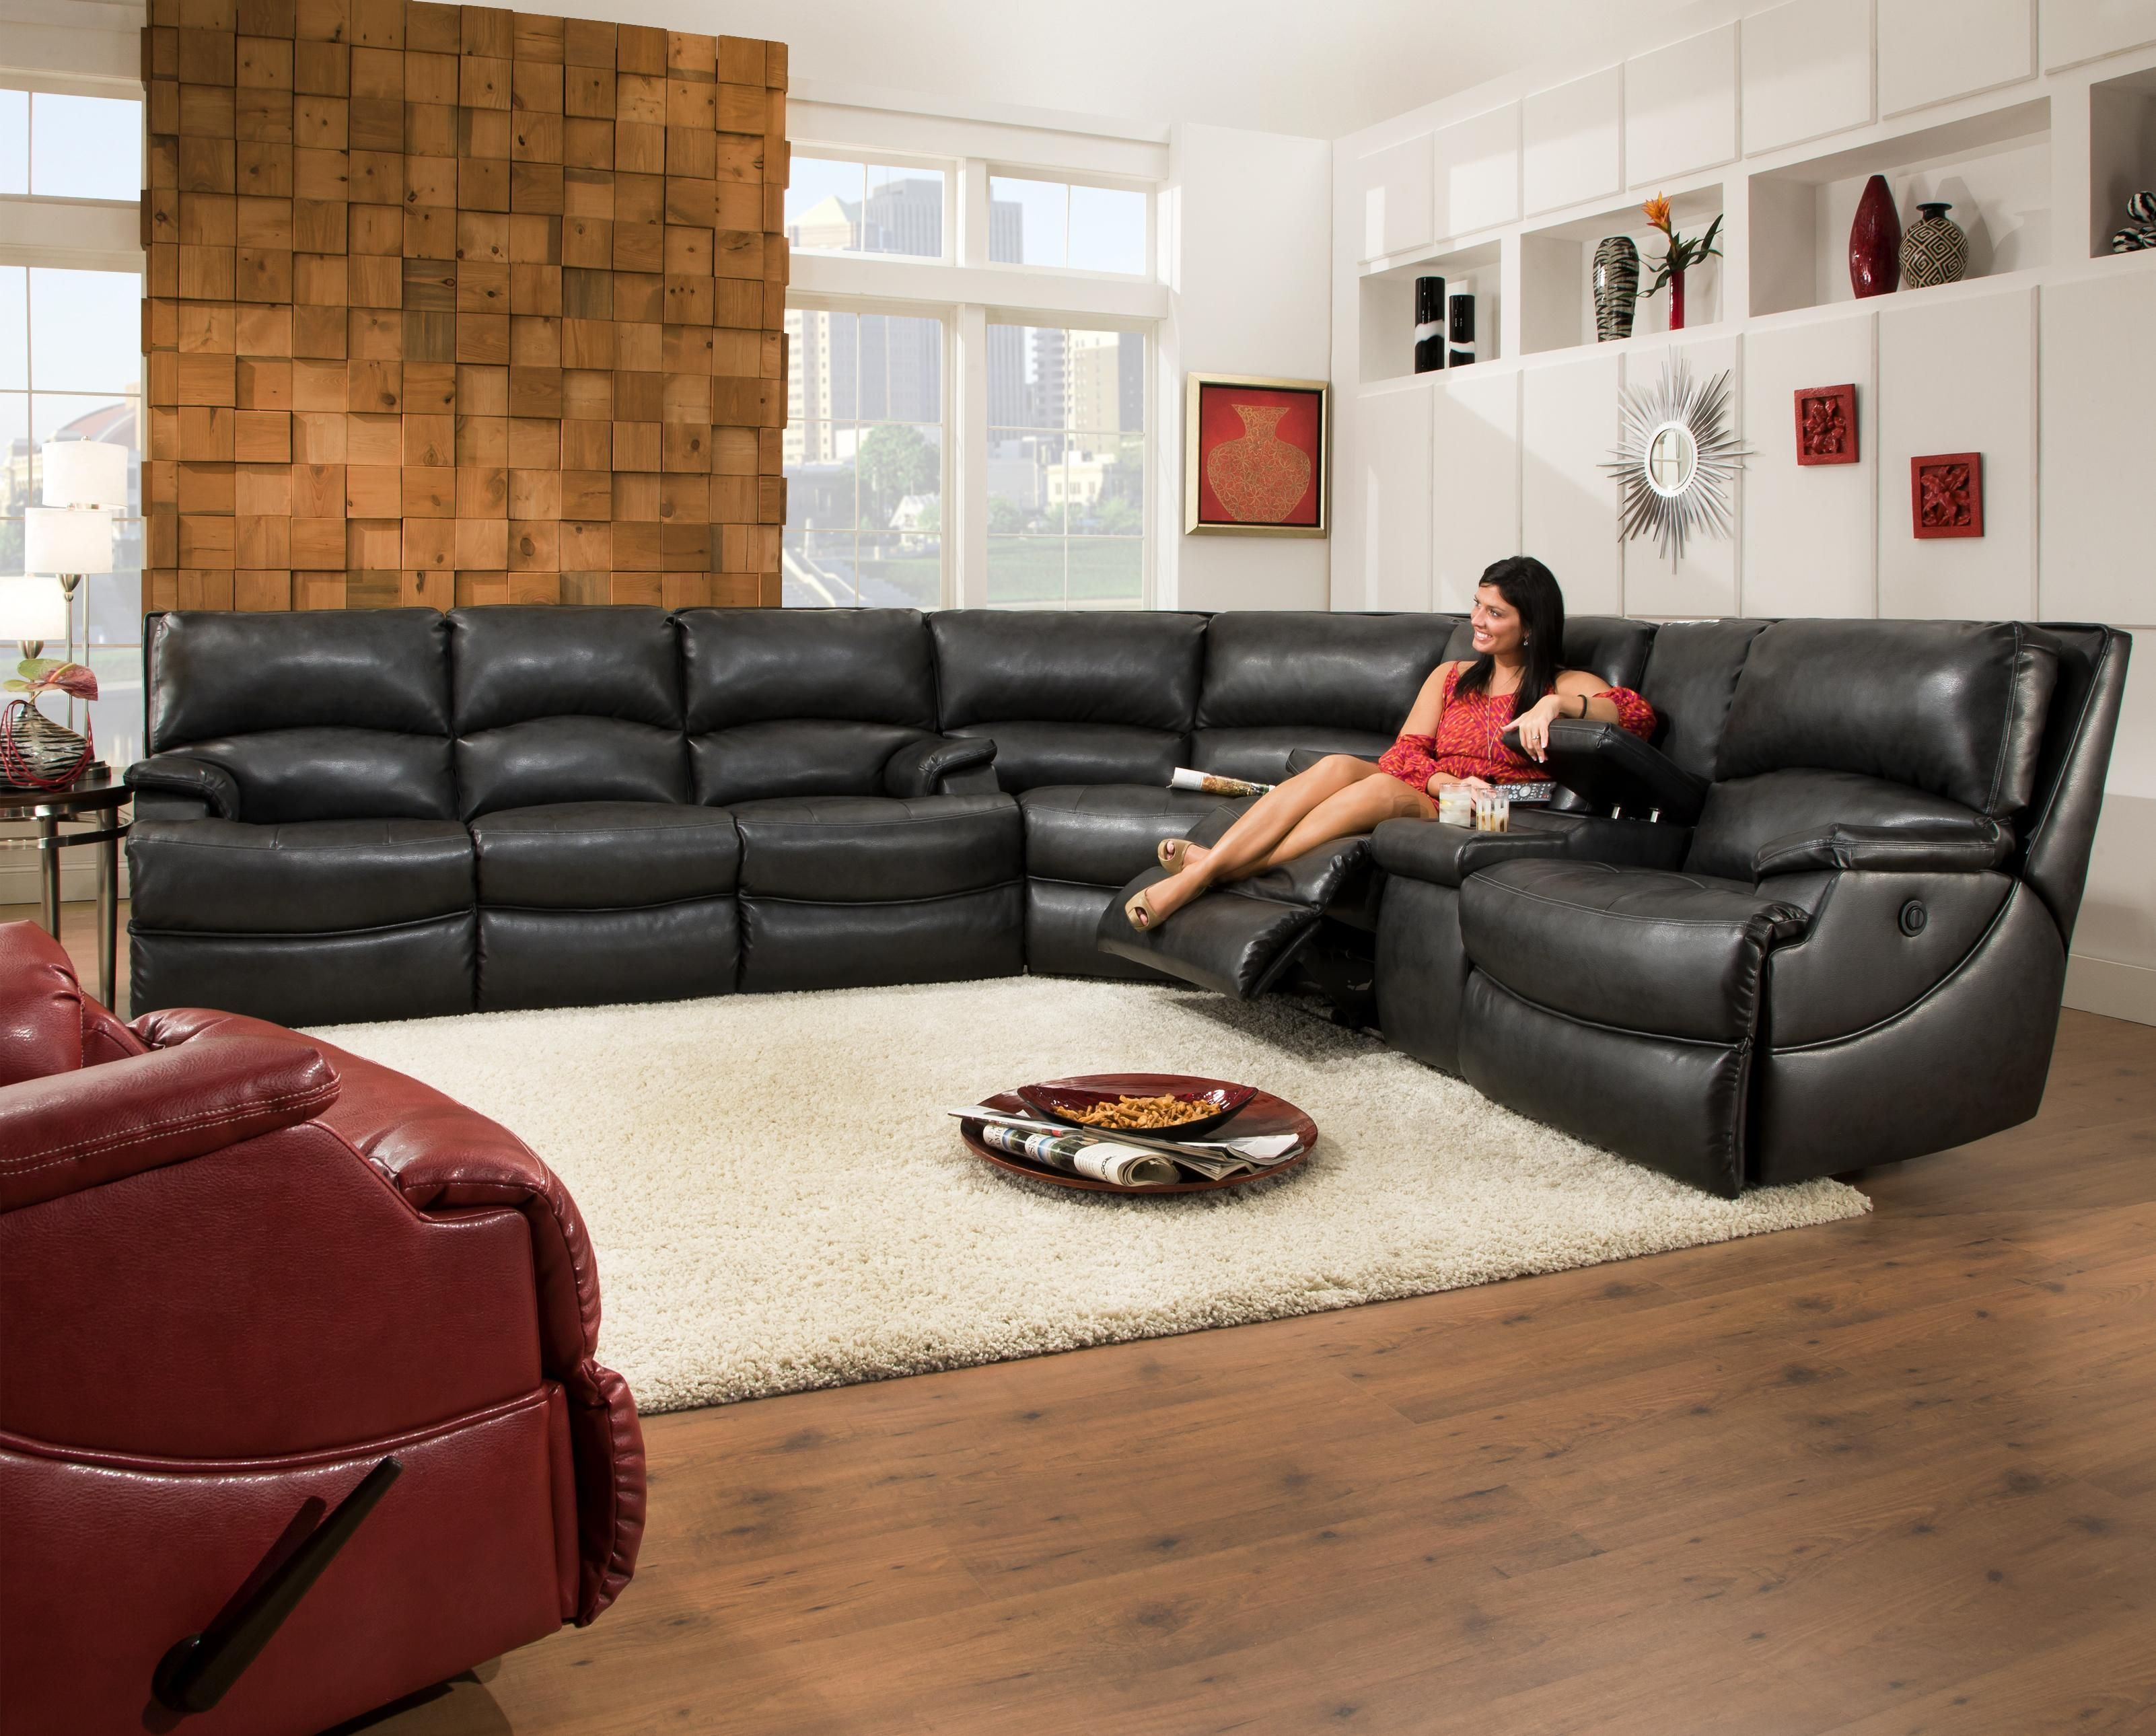 The New Sectional Sofas With Cup Holders For Property Designs